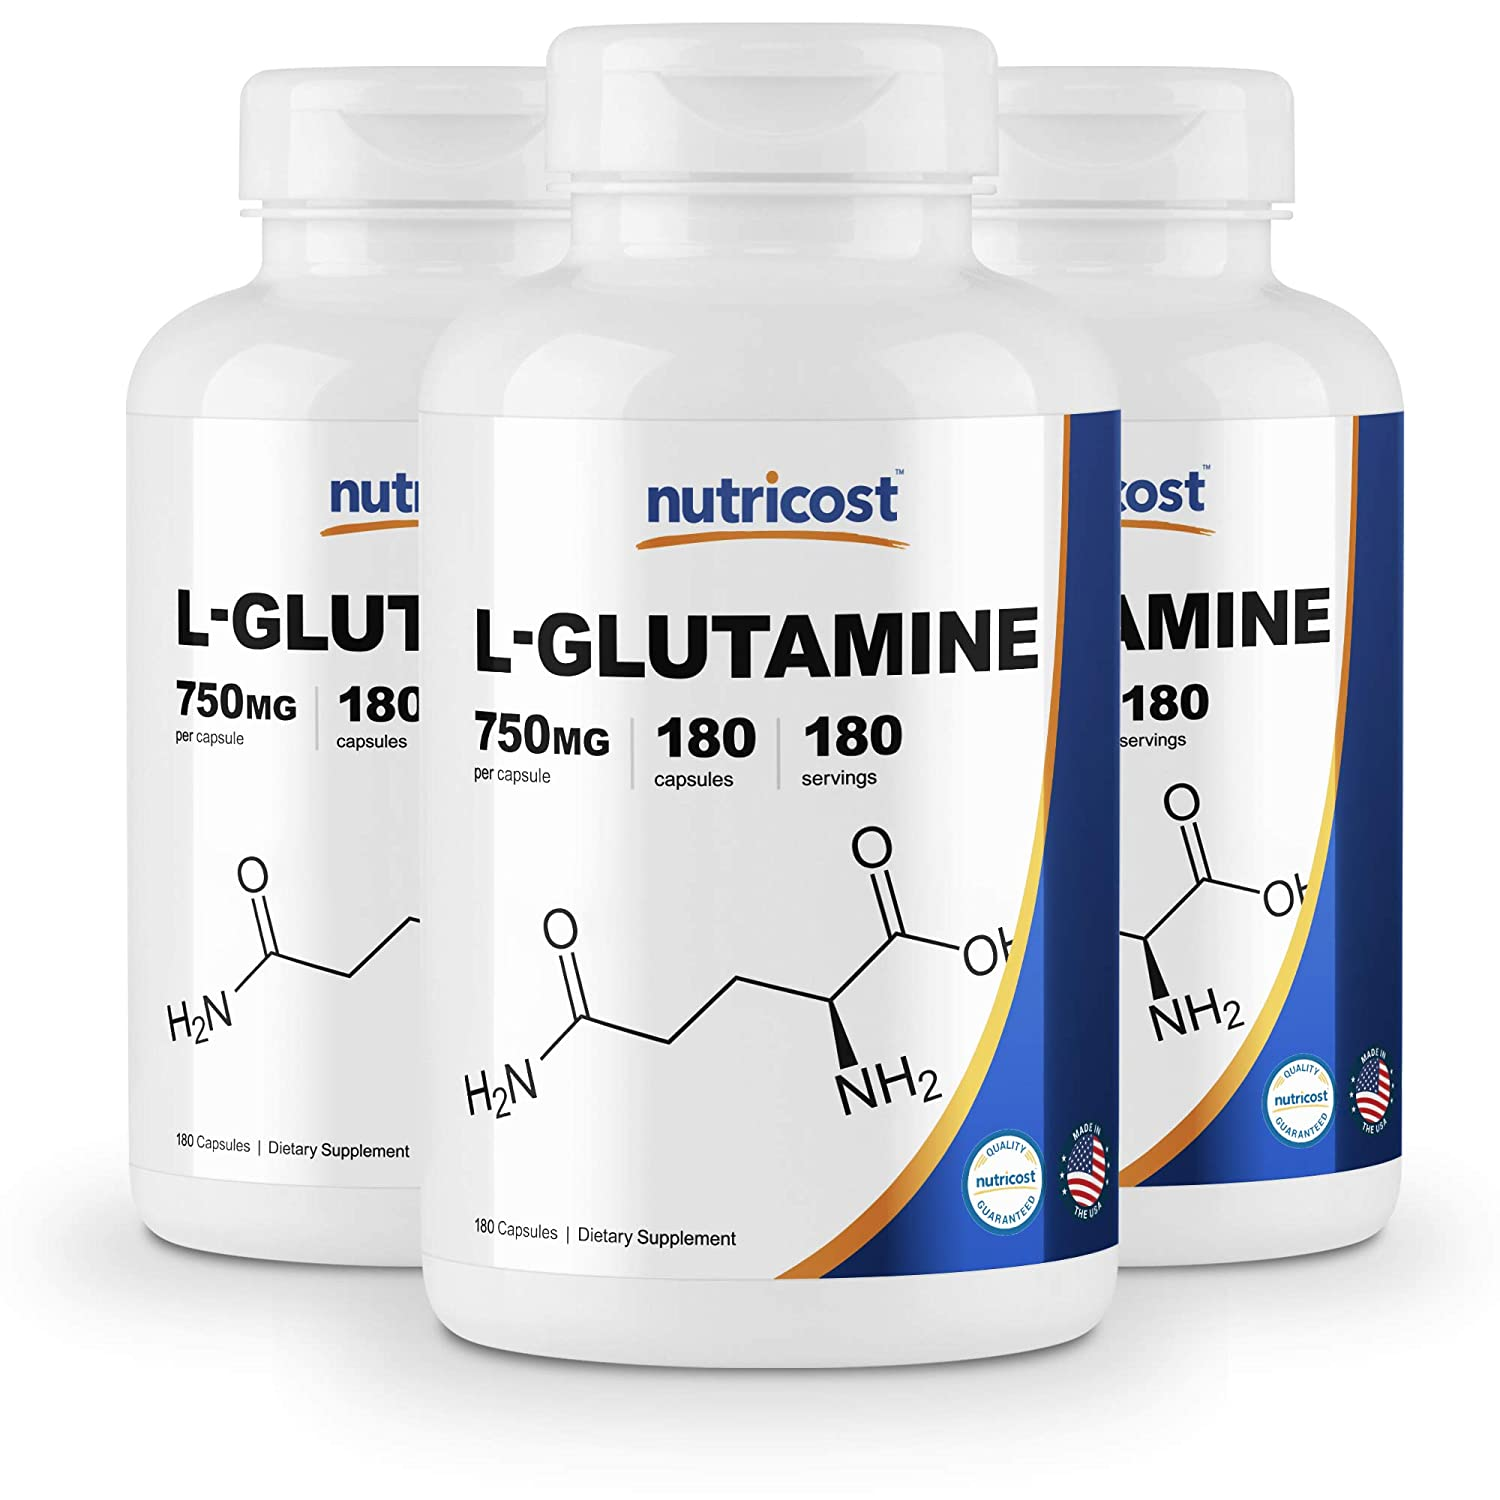 Nutricost L-Glutamine 750mg 180 Capsules 3 Bottles